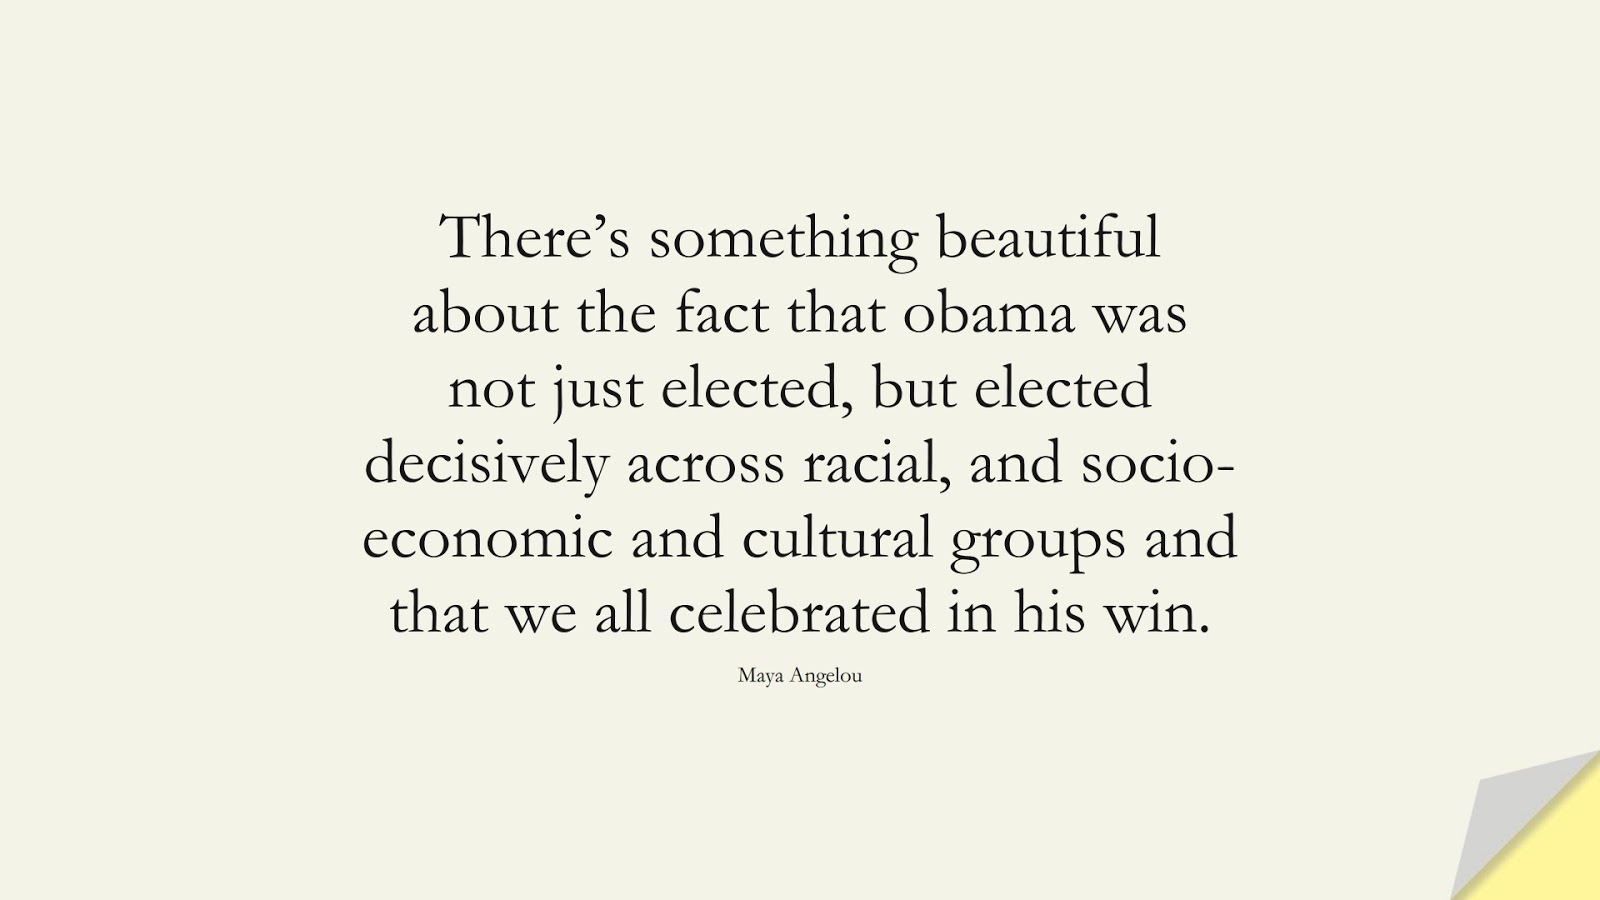 There's something beautiful about the fact that obama was not just elected, but elected decisively across racial, and socio-economic and cultural groups and that we all celebrated in his win. (Maya Angelou);  #MayaAngelouQuotes